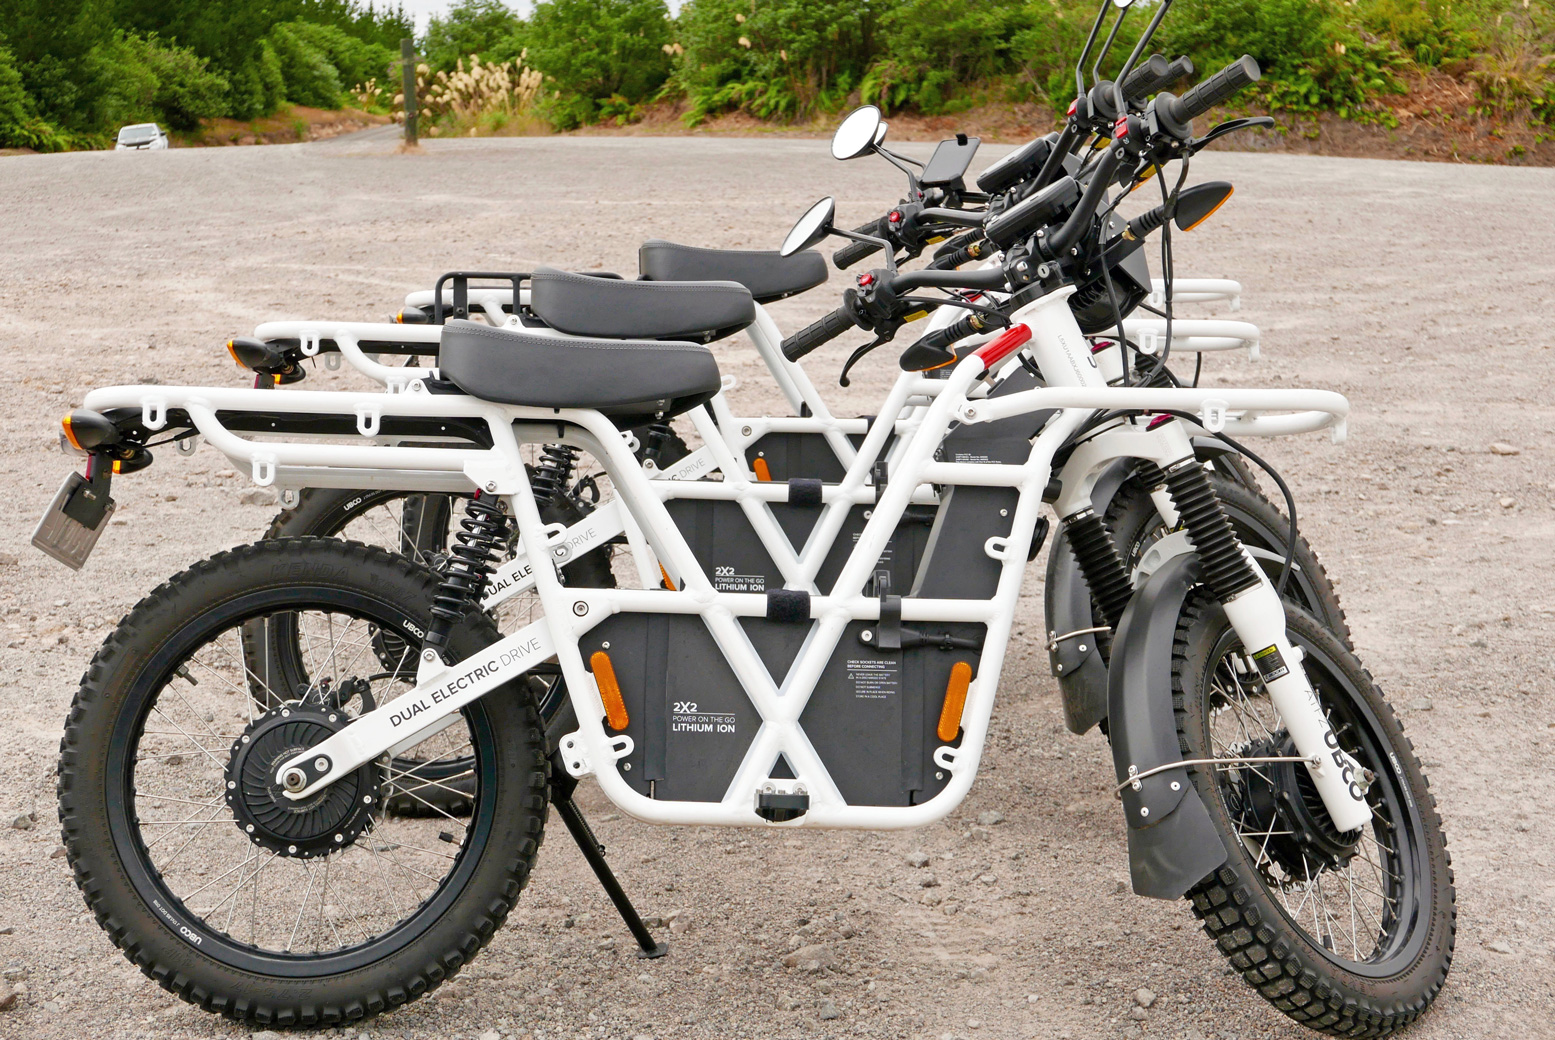 8d829a4509d UBCO stands for Utility Bike Company, founded in 2015 when the work of a  couple of creative Kiwi engineers got picked up by entrepreneur, Tim Allan  (riding, ...